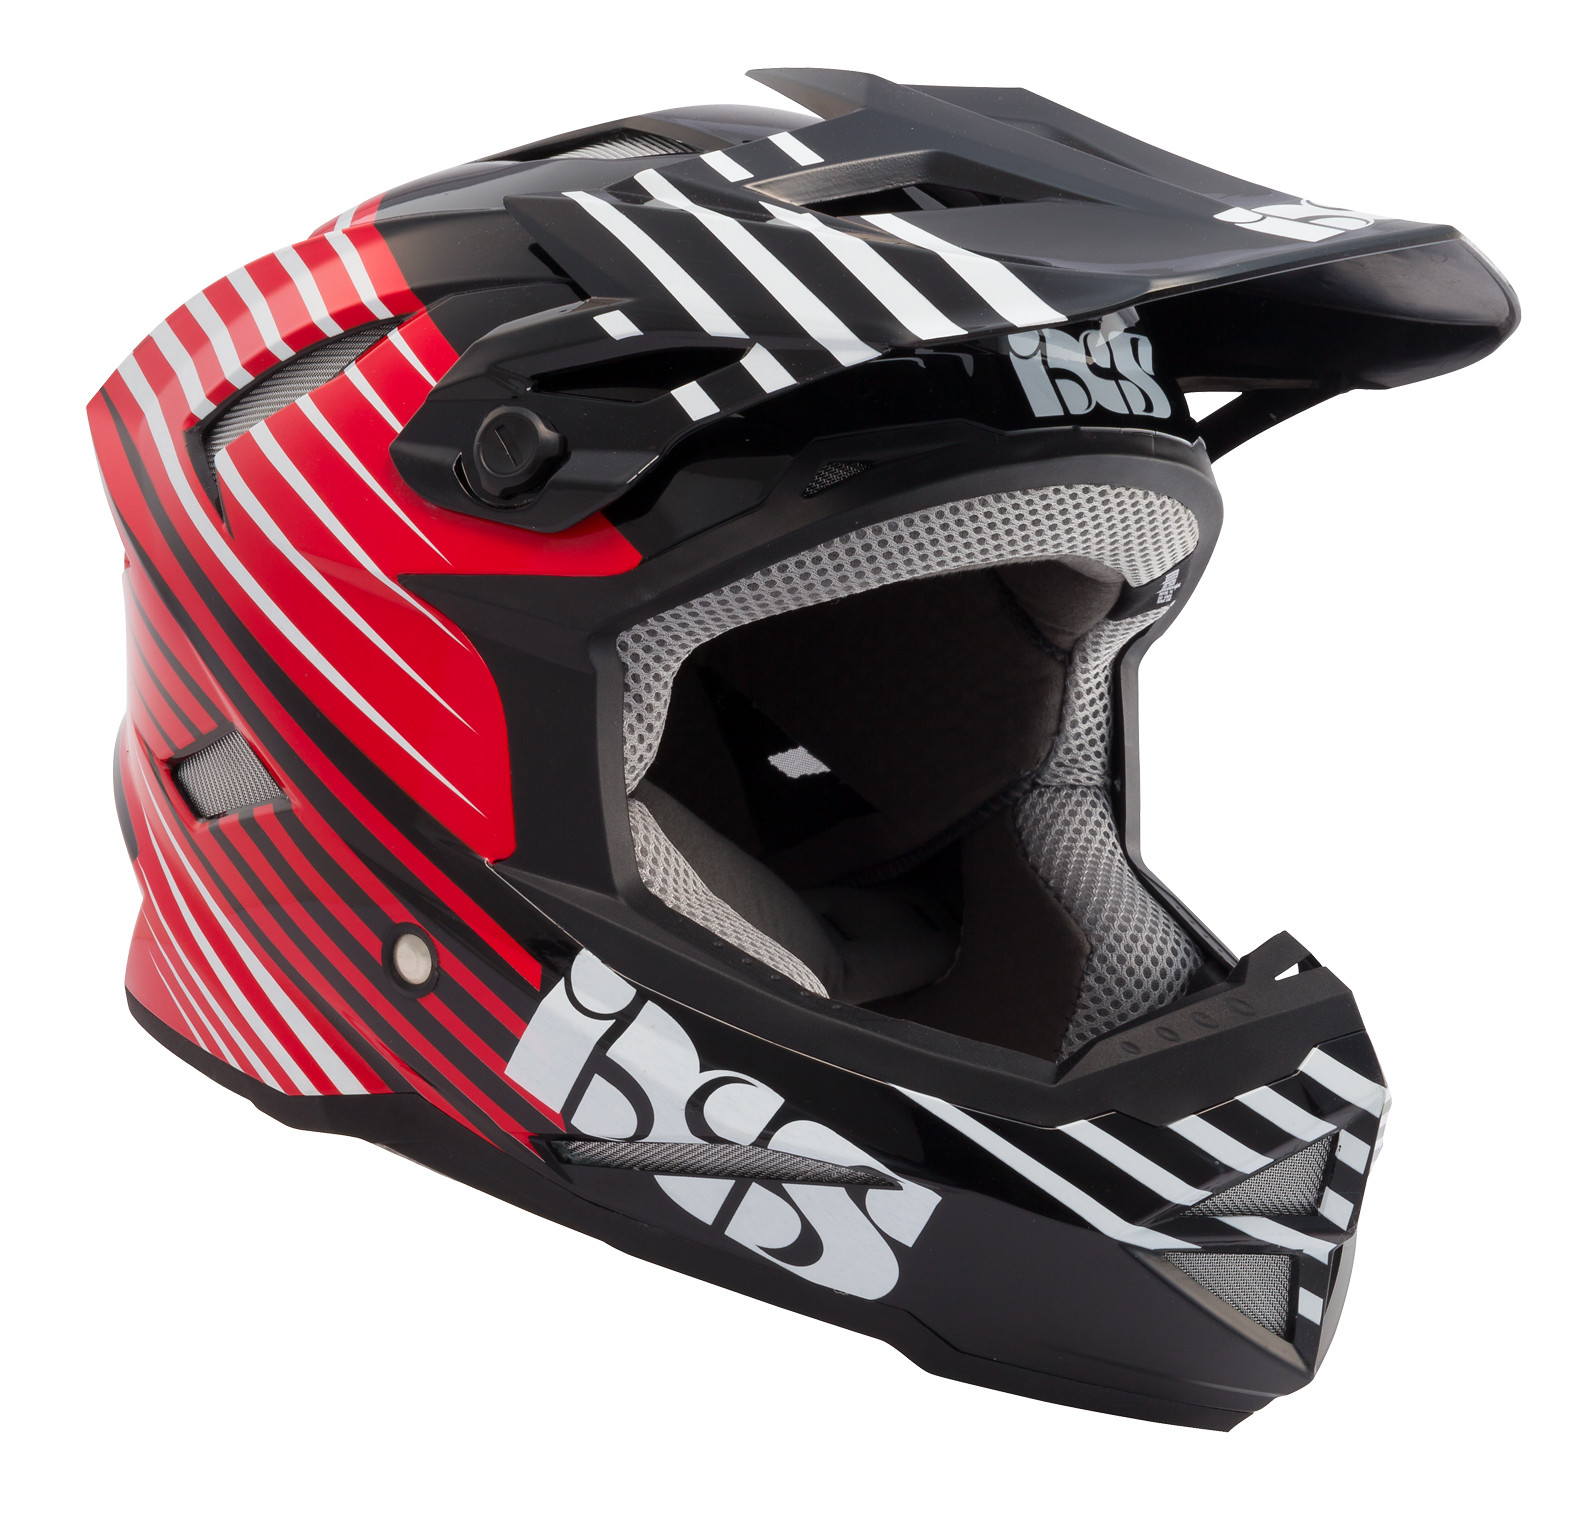 iXS Metis-Slide Full Face Helmet metis slide red 1